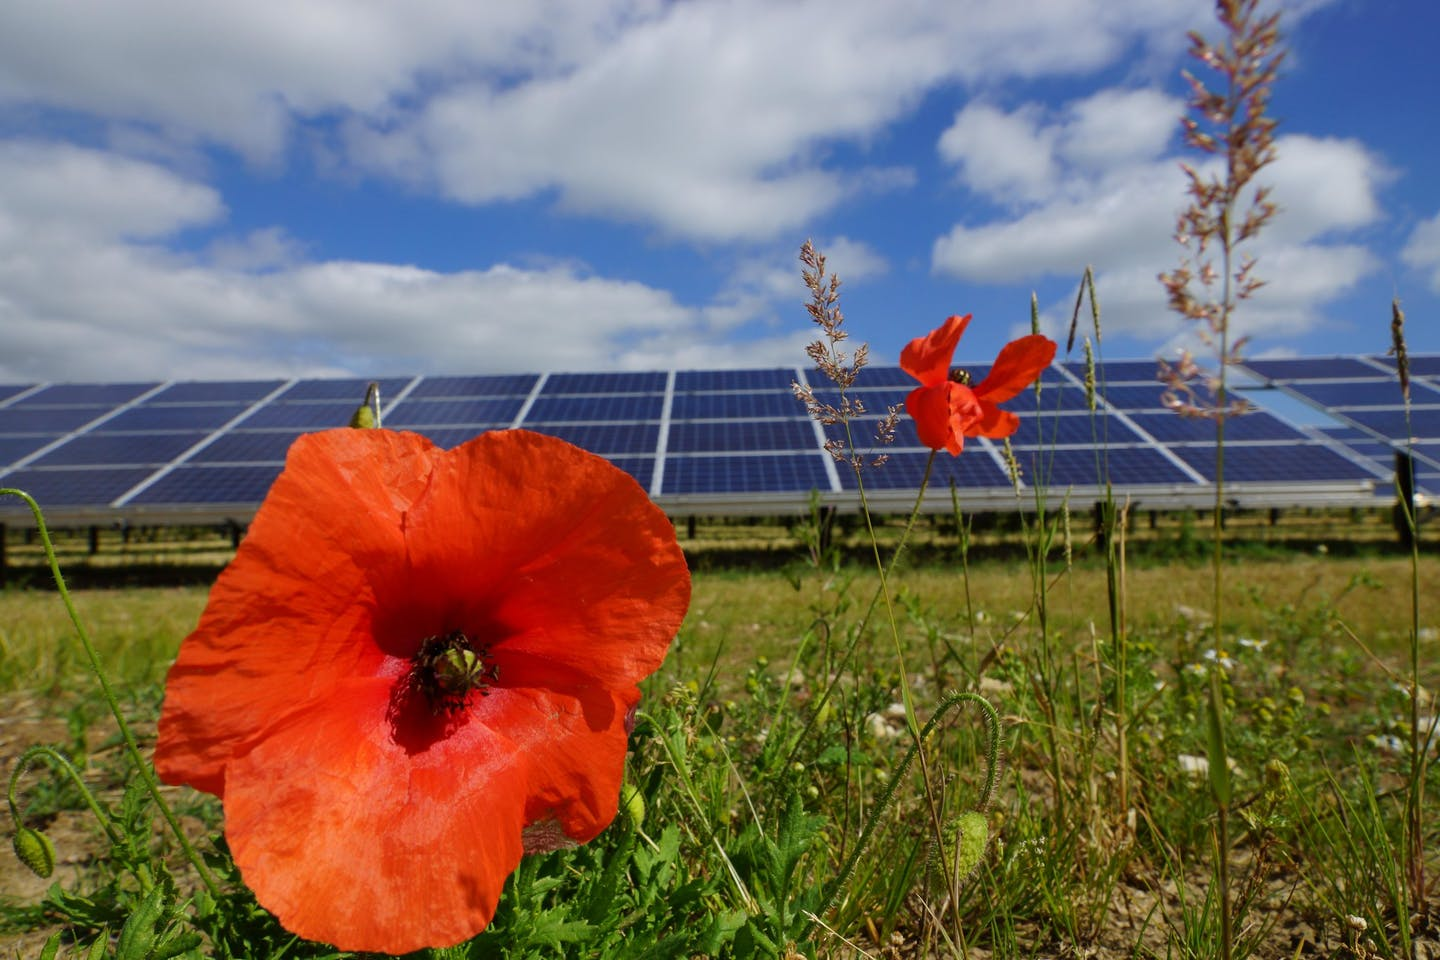 Poppy and solar panels